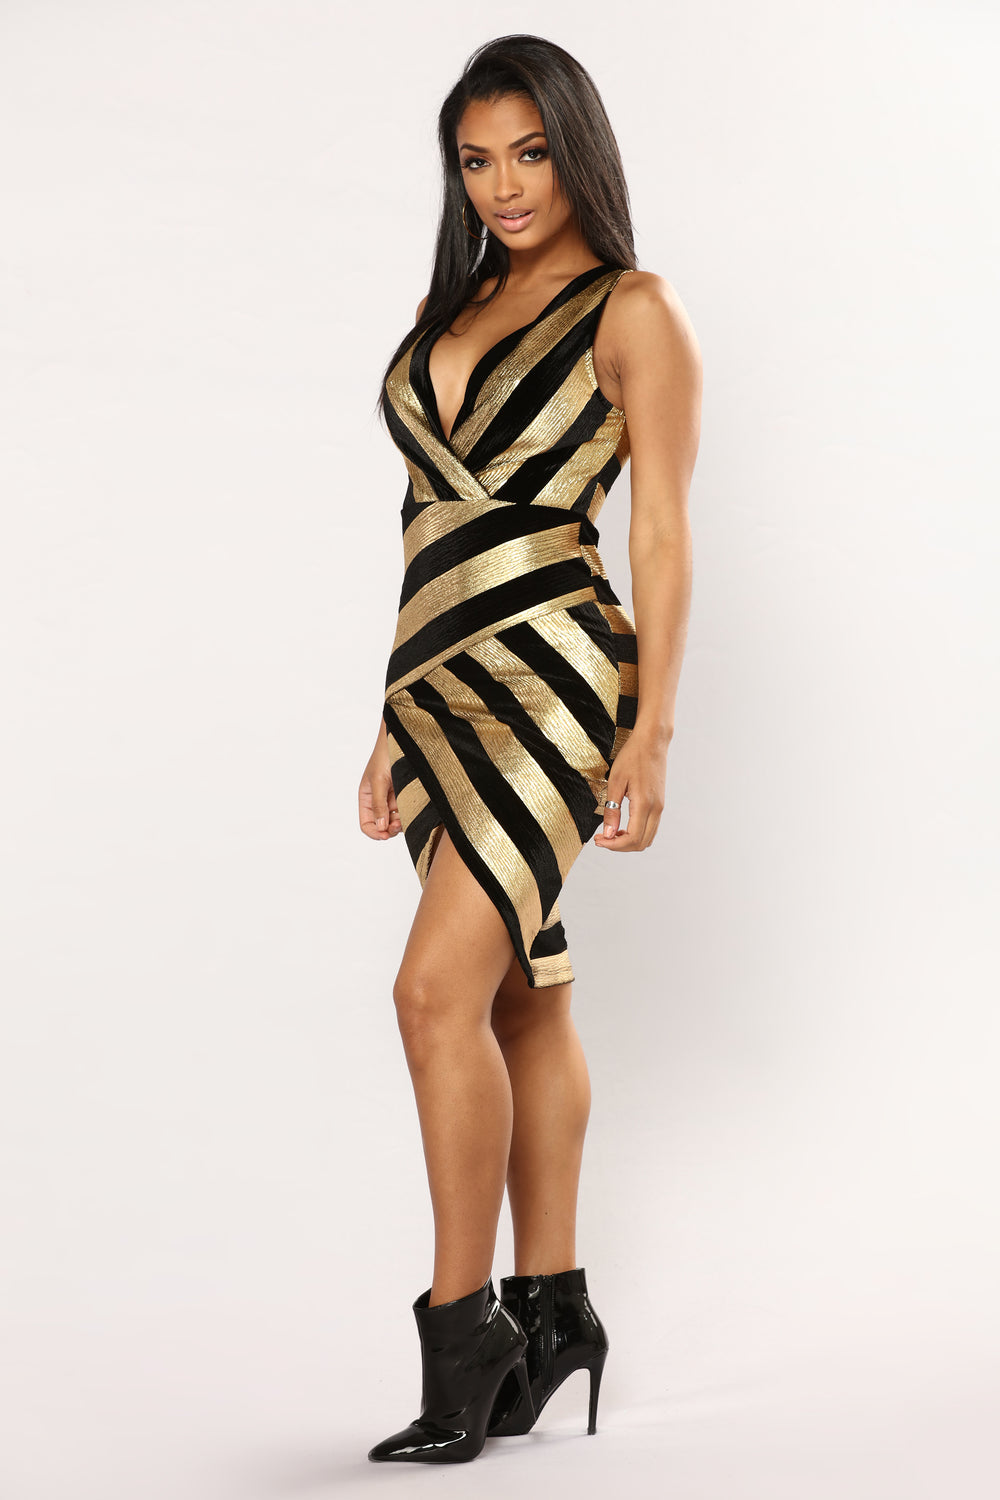 Egyptian Goddess Velvet Dress - Black/Gold